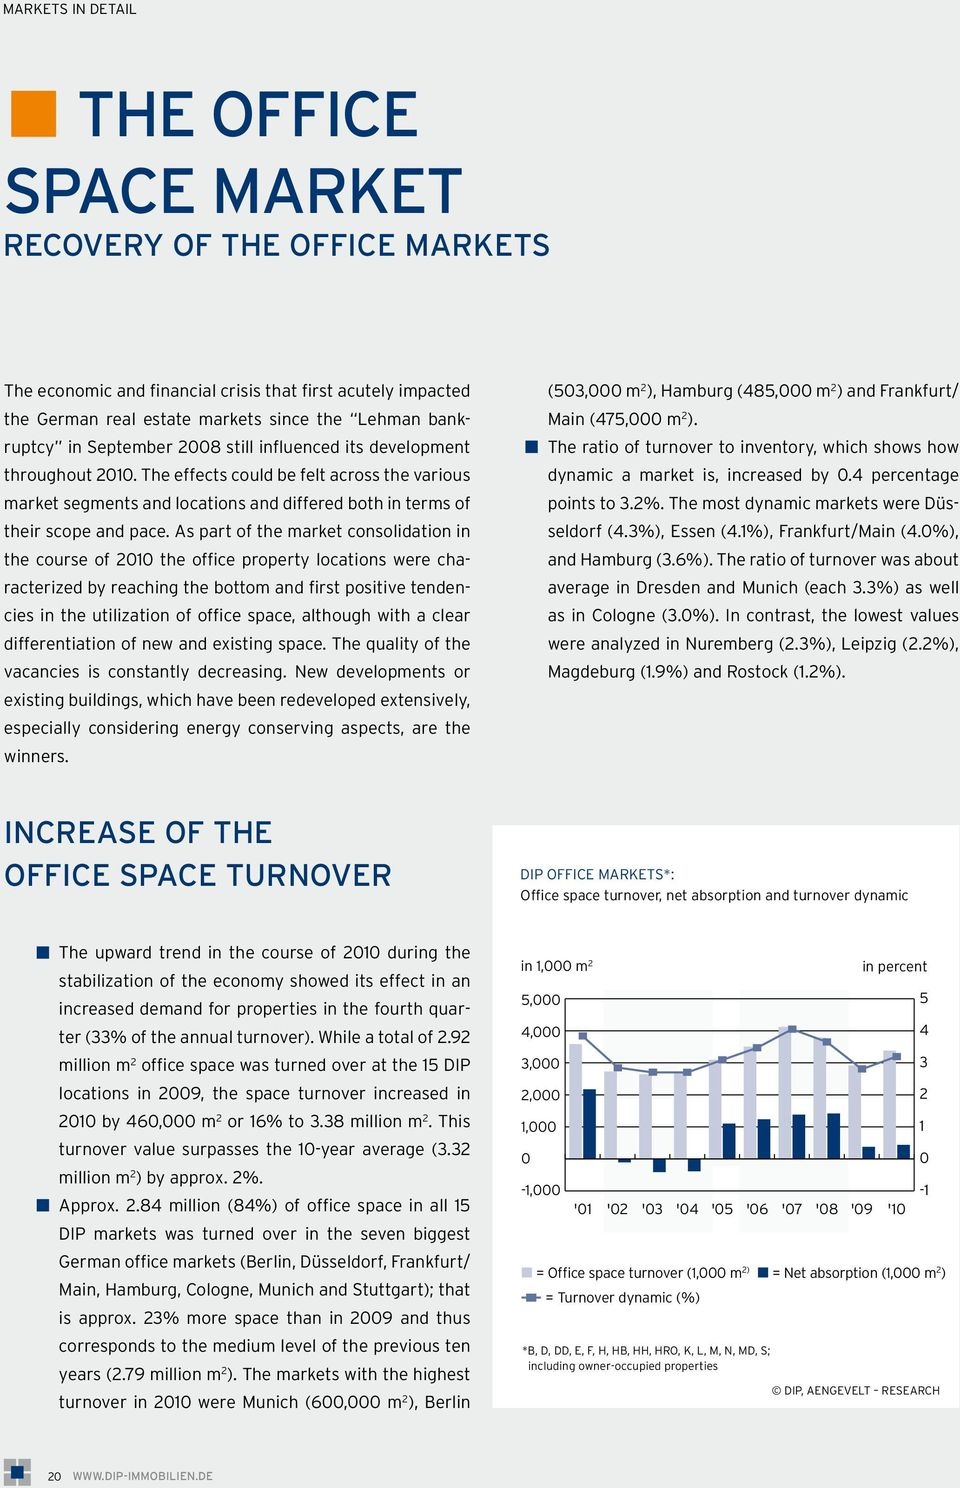 As part of the market consolidation in the course of 2010 the office property locations were characterized by reaching the bottom and first positive tendencies in the utilization of office space,